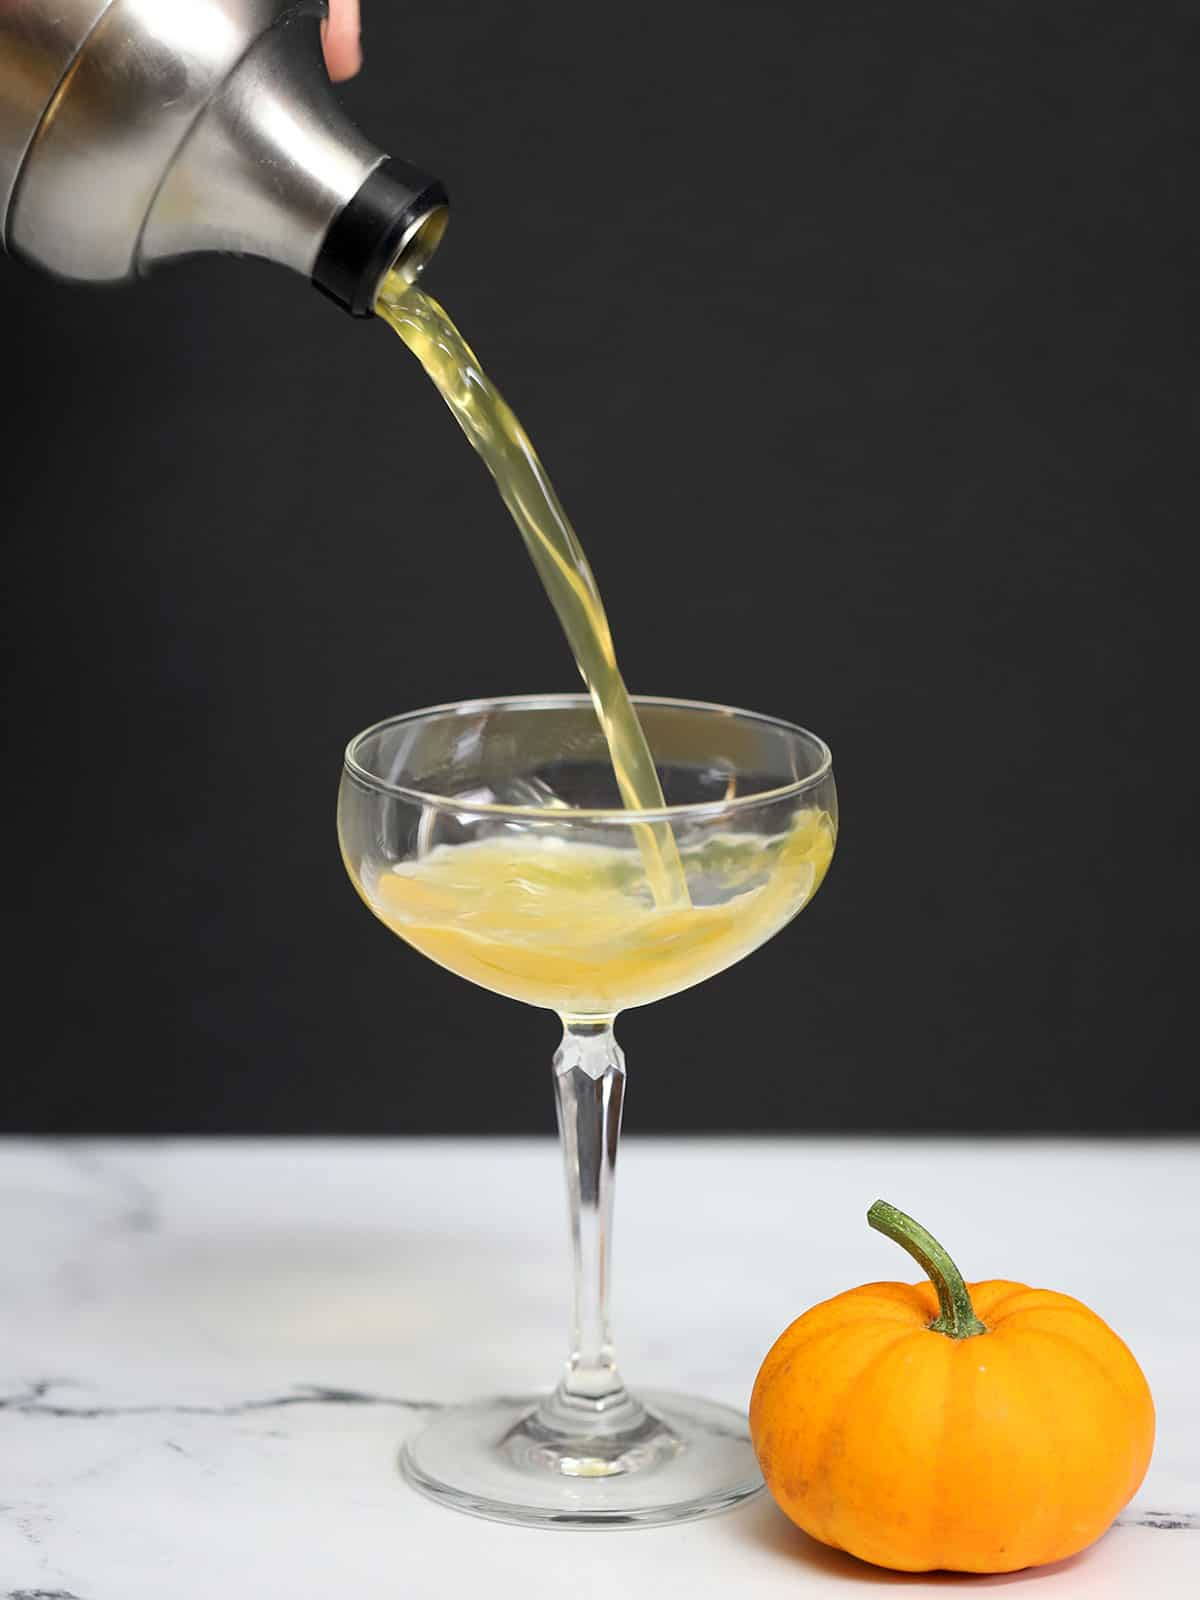 Pumpkin Ginger Martini being poured from a cocktail shaker into a glass.